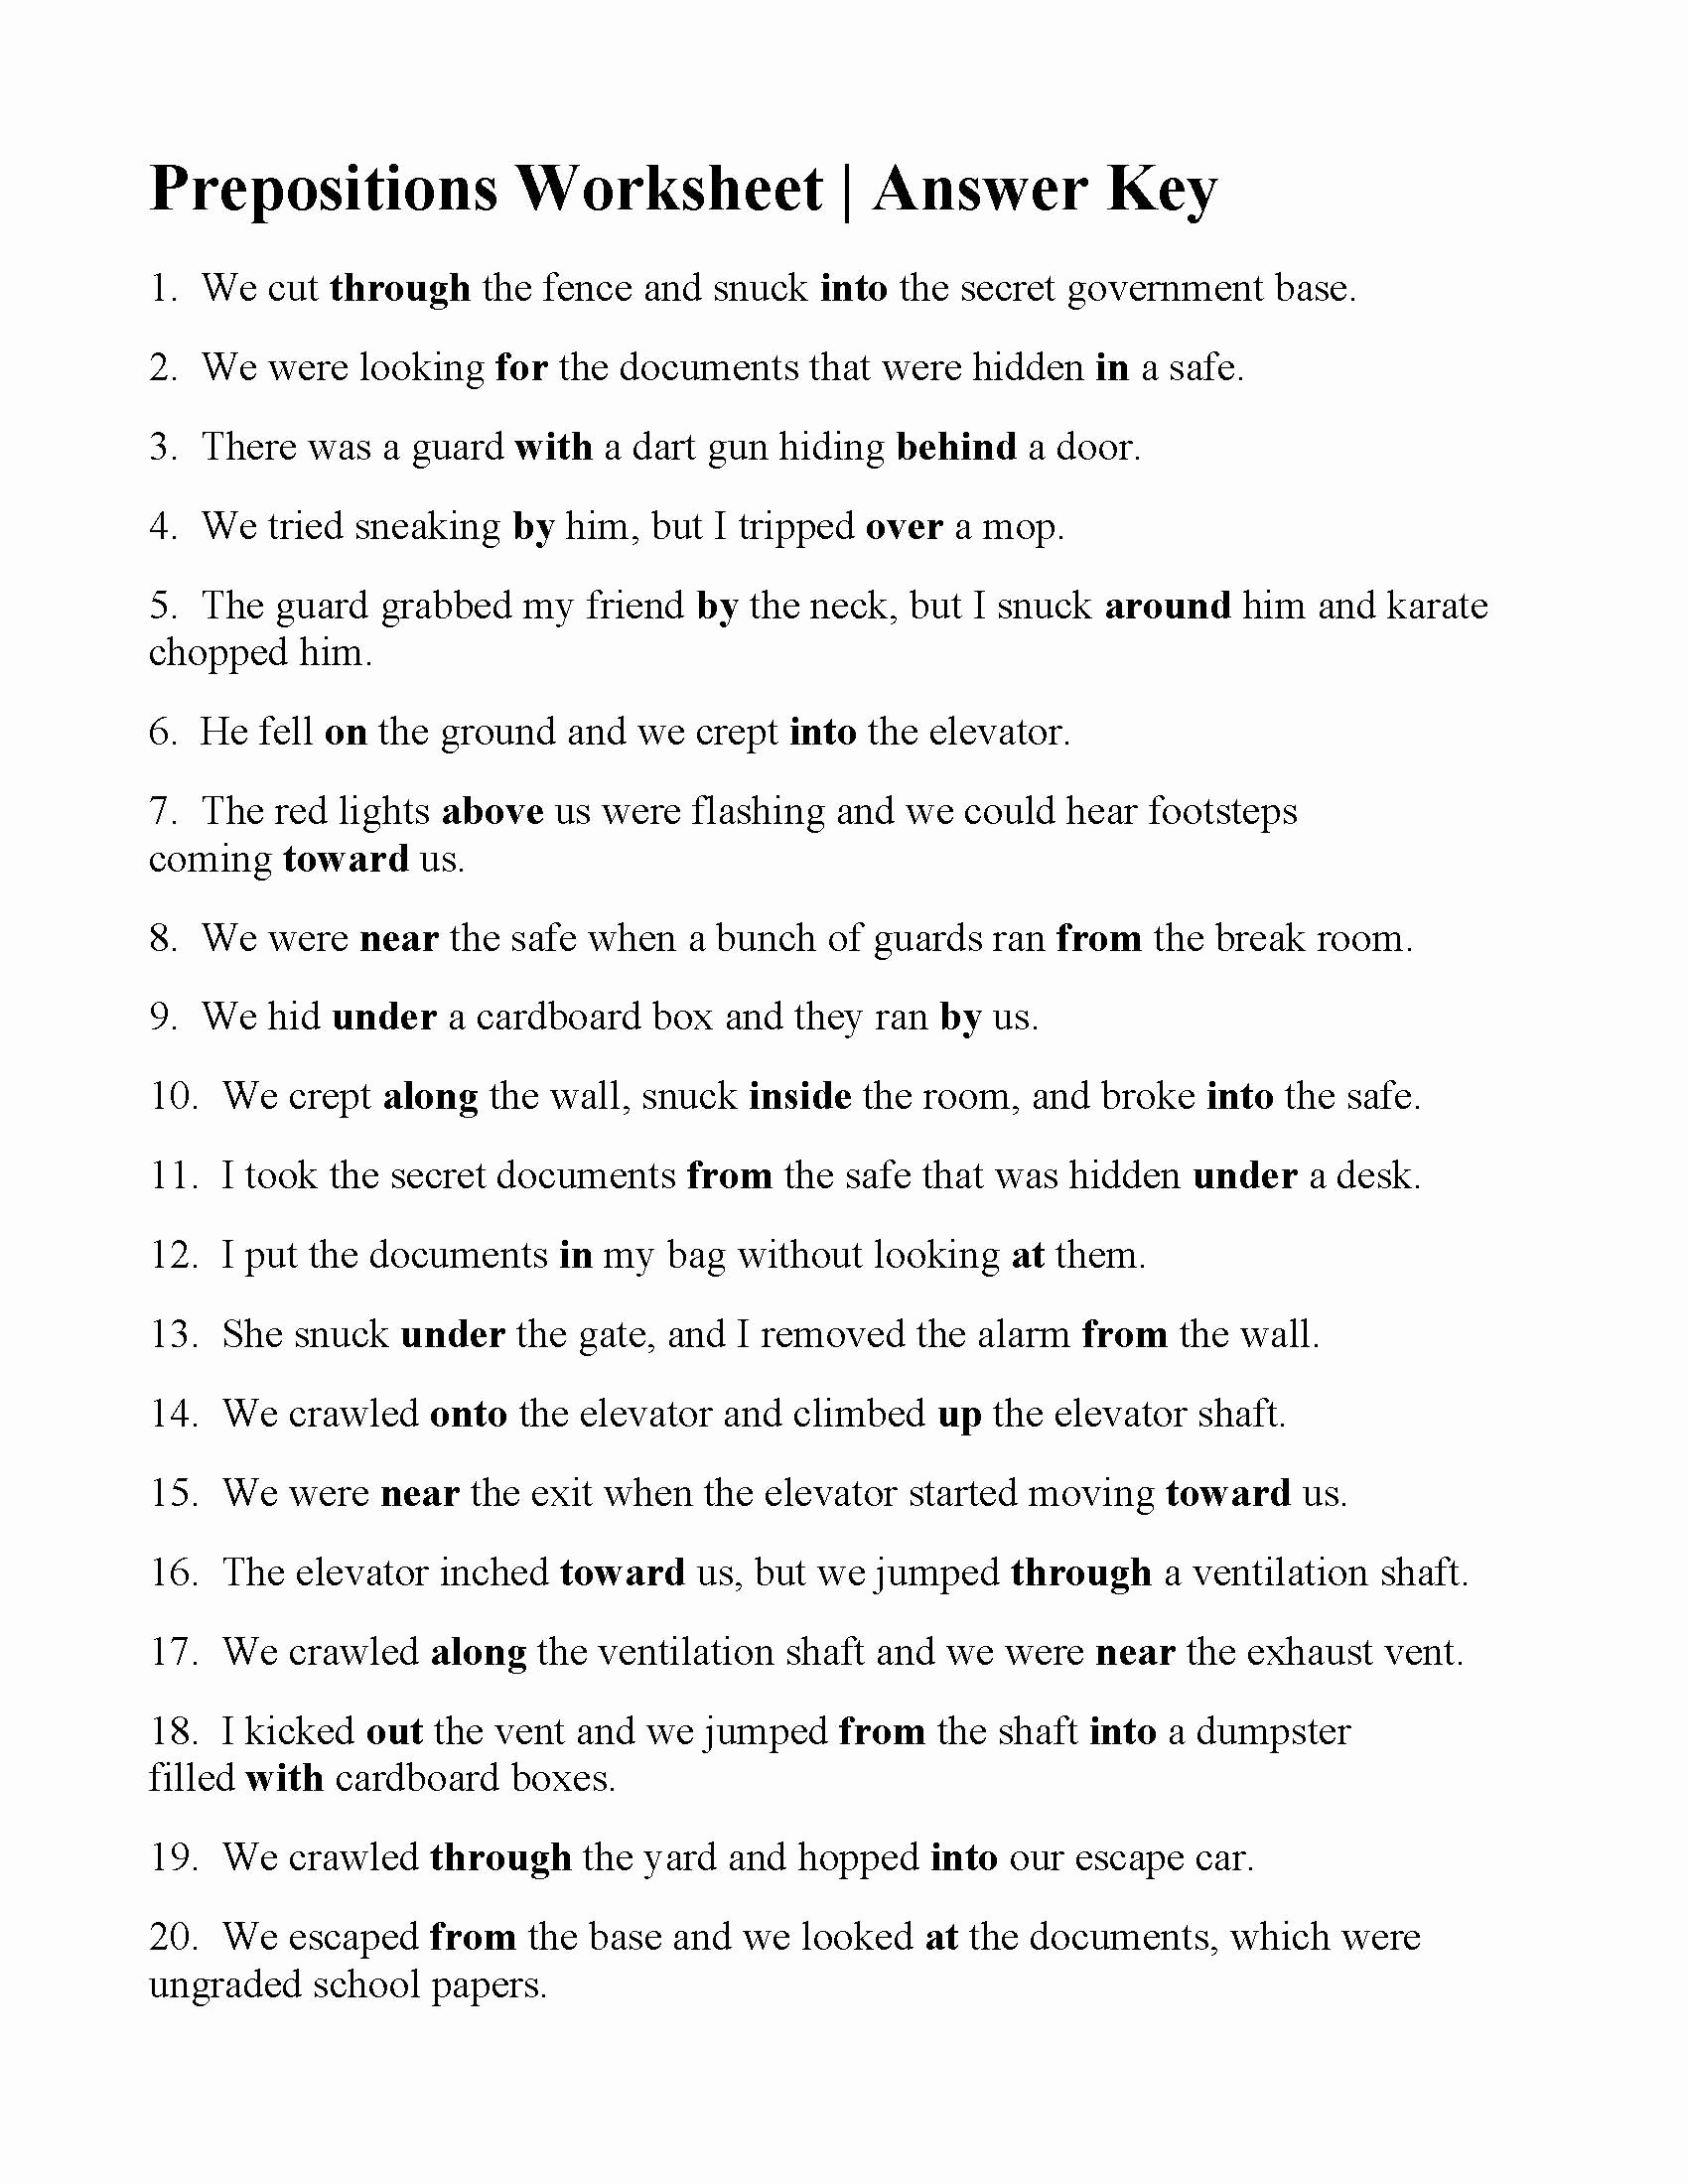 Prepositional Phrase Worksheet with Answers Printable Prepositions Worksheet